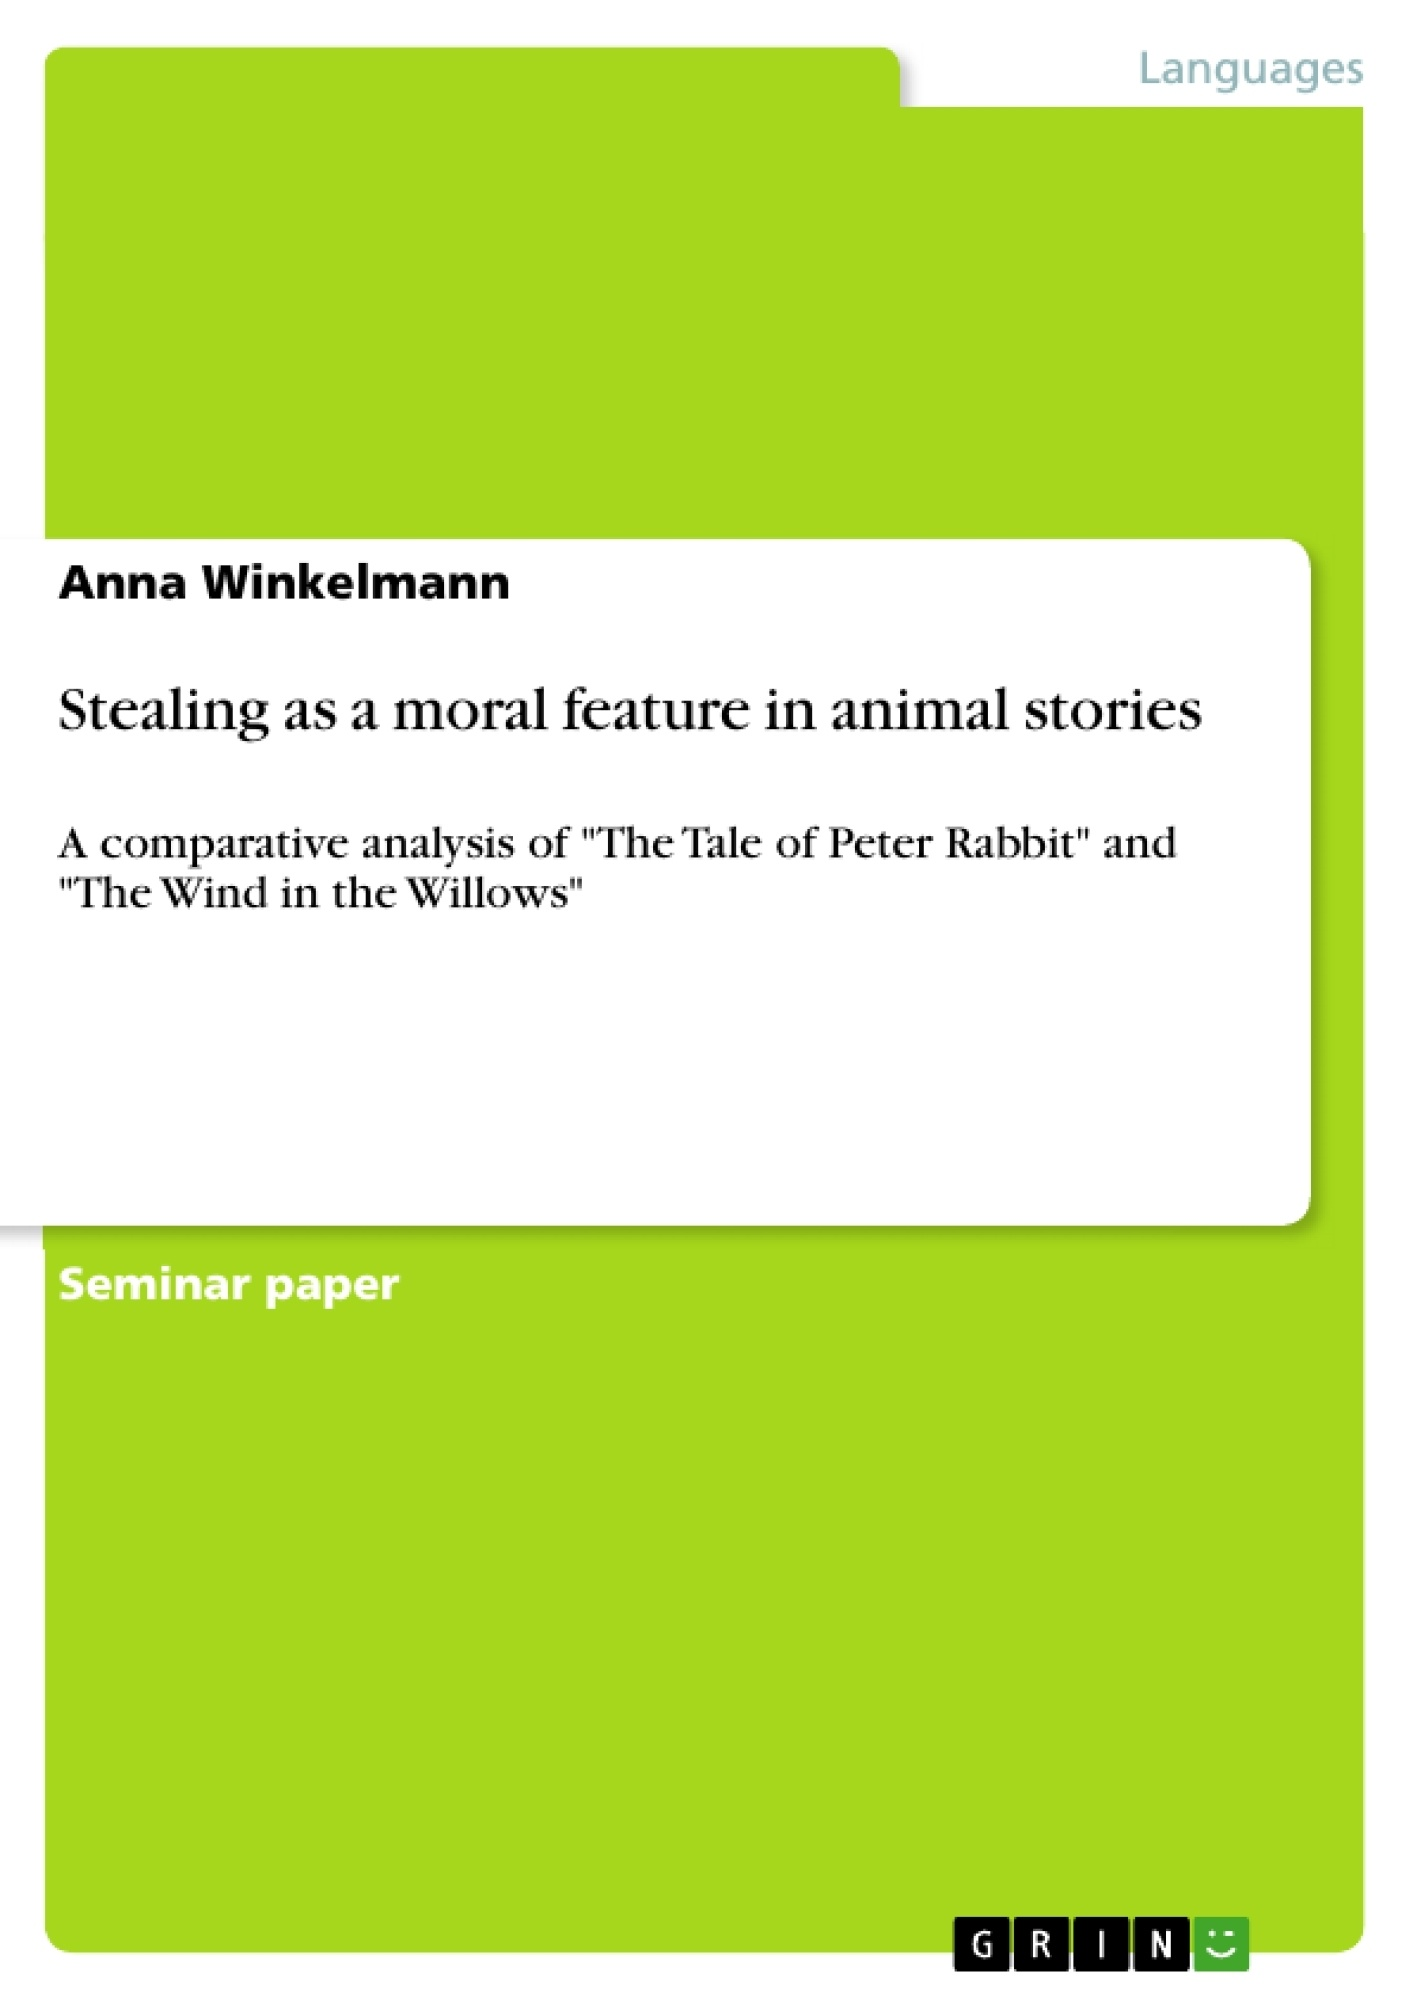 Title: Stealing as a moral feature in animal stories